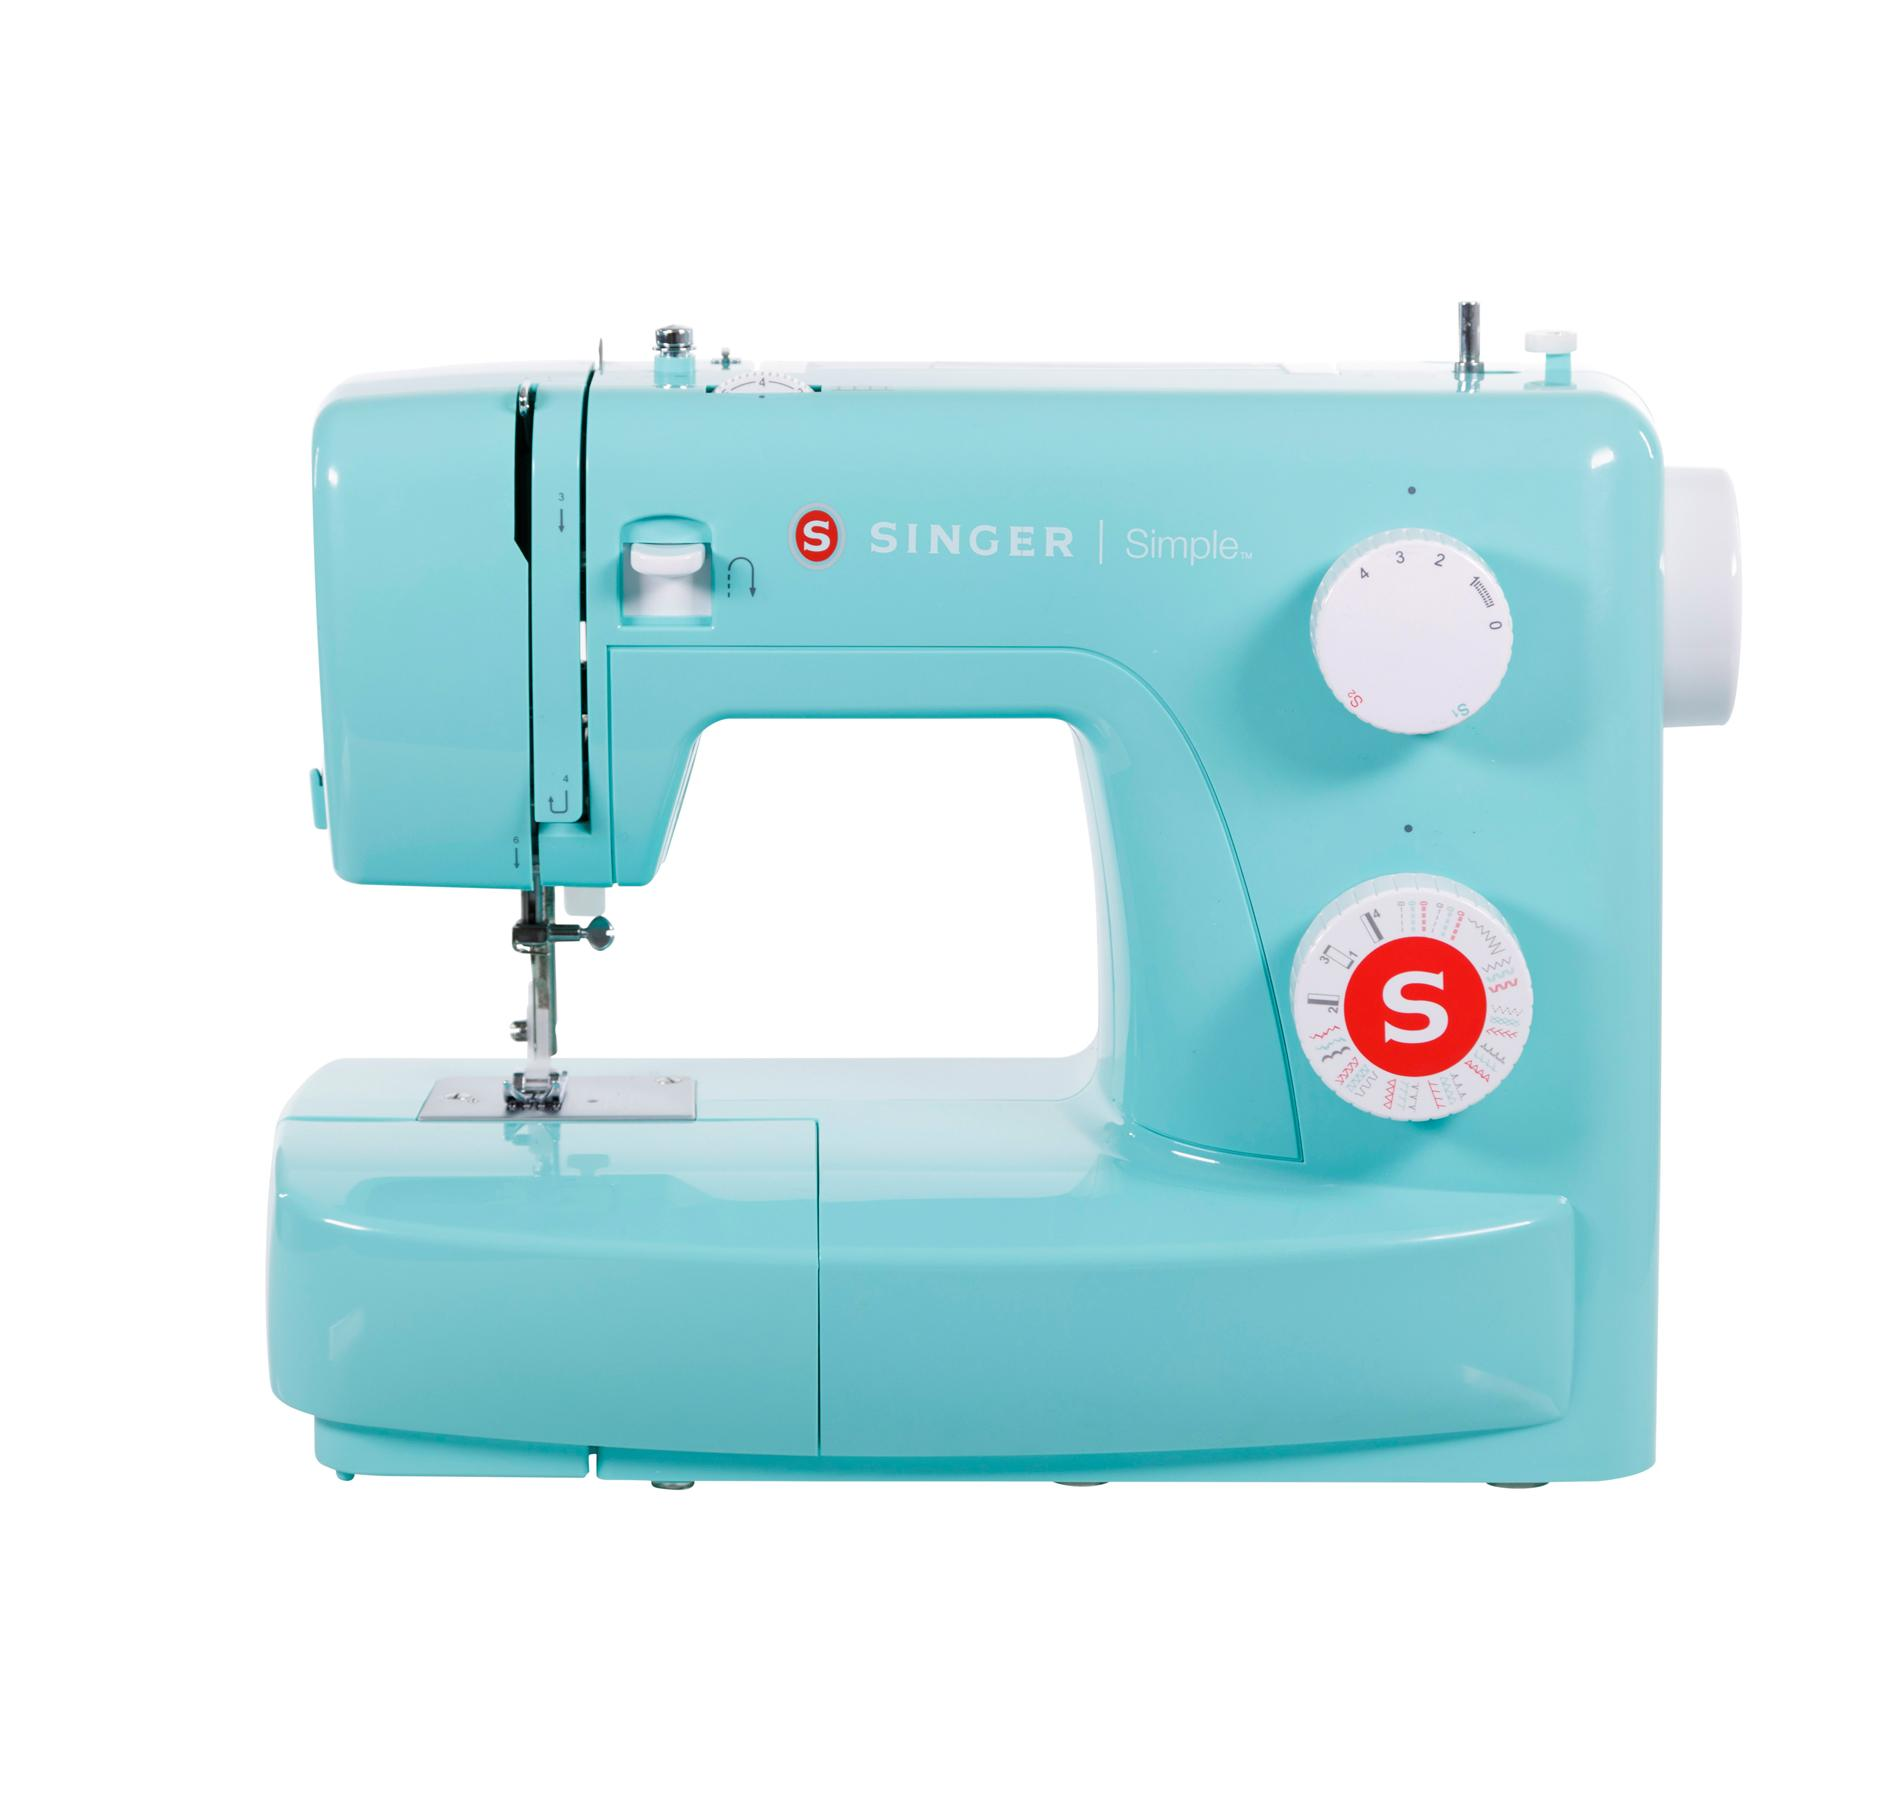 STAPLER MACHINES MACHINE FOR SEWING SINGER SIMPLE 3223 GREEN EDITION